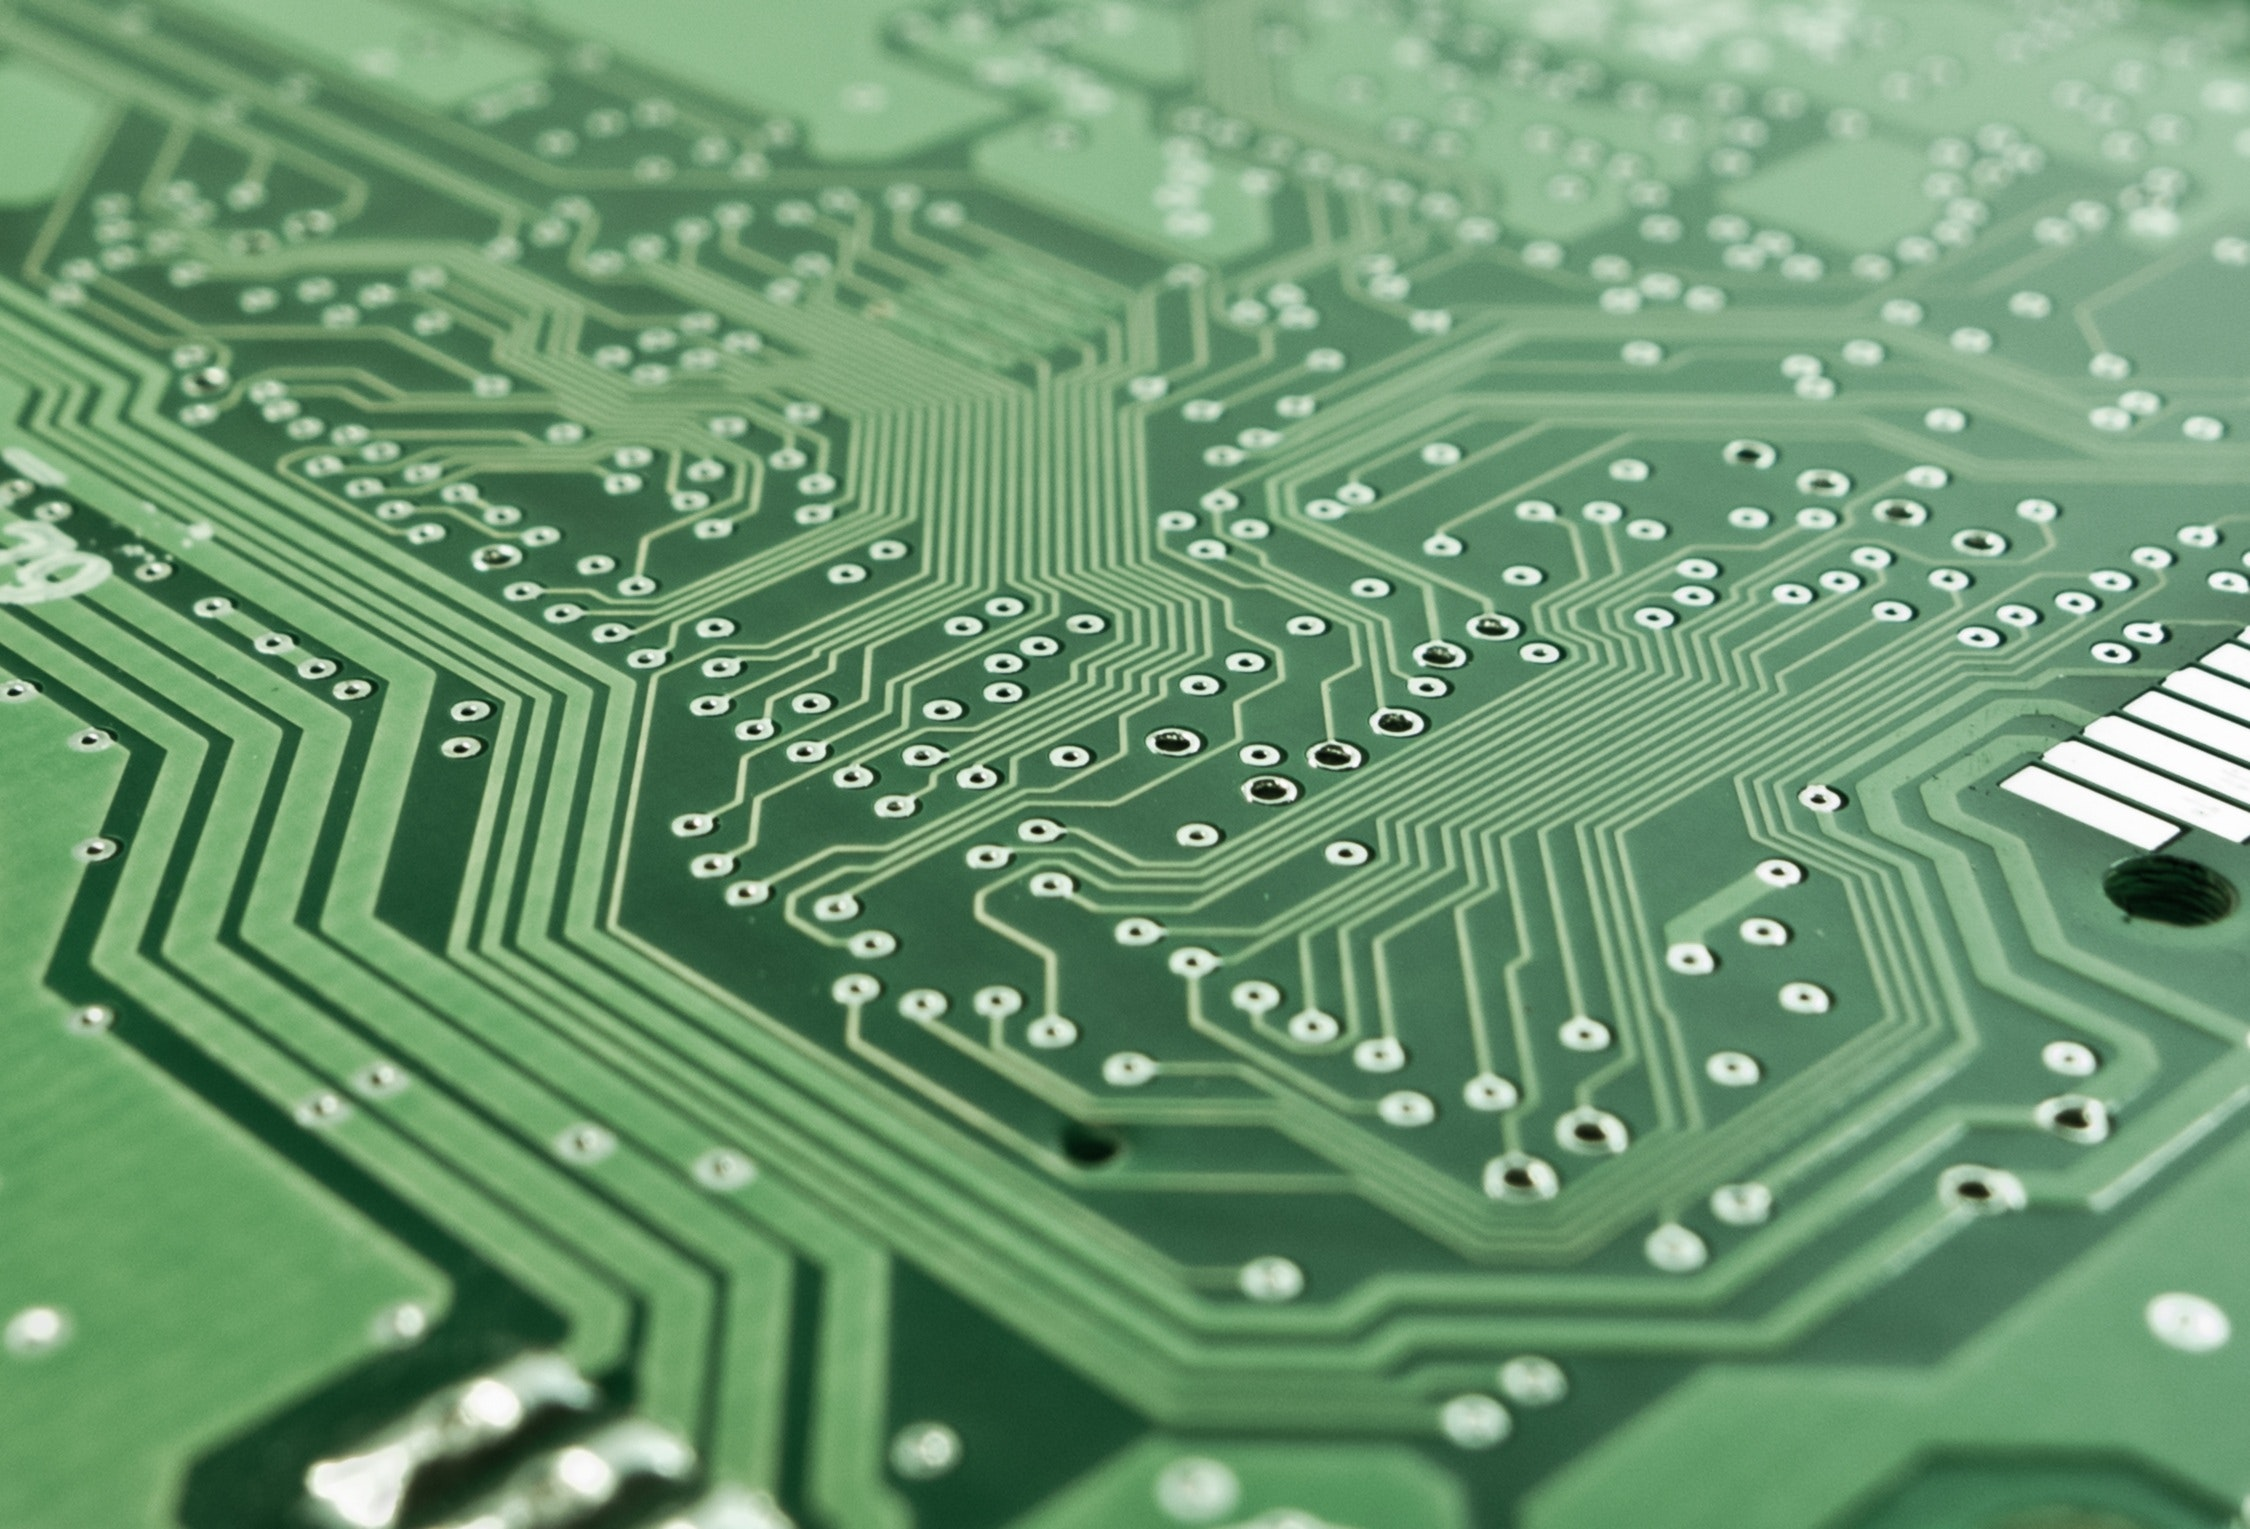 Technology Images Pexels Free Stock Photos Graphic Of Technological Theme And Circuit Board Fetching More